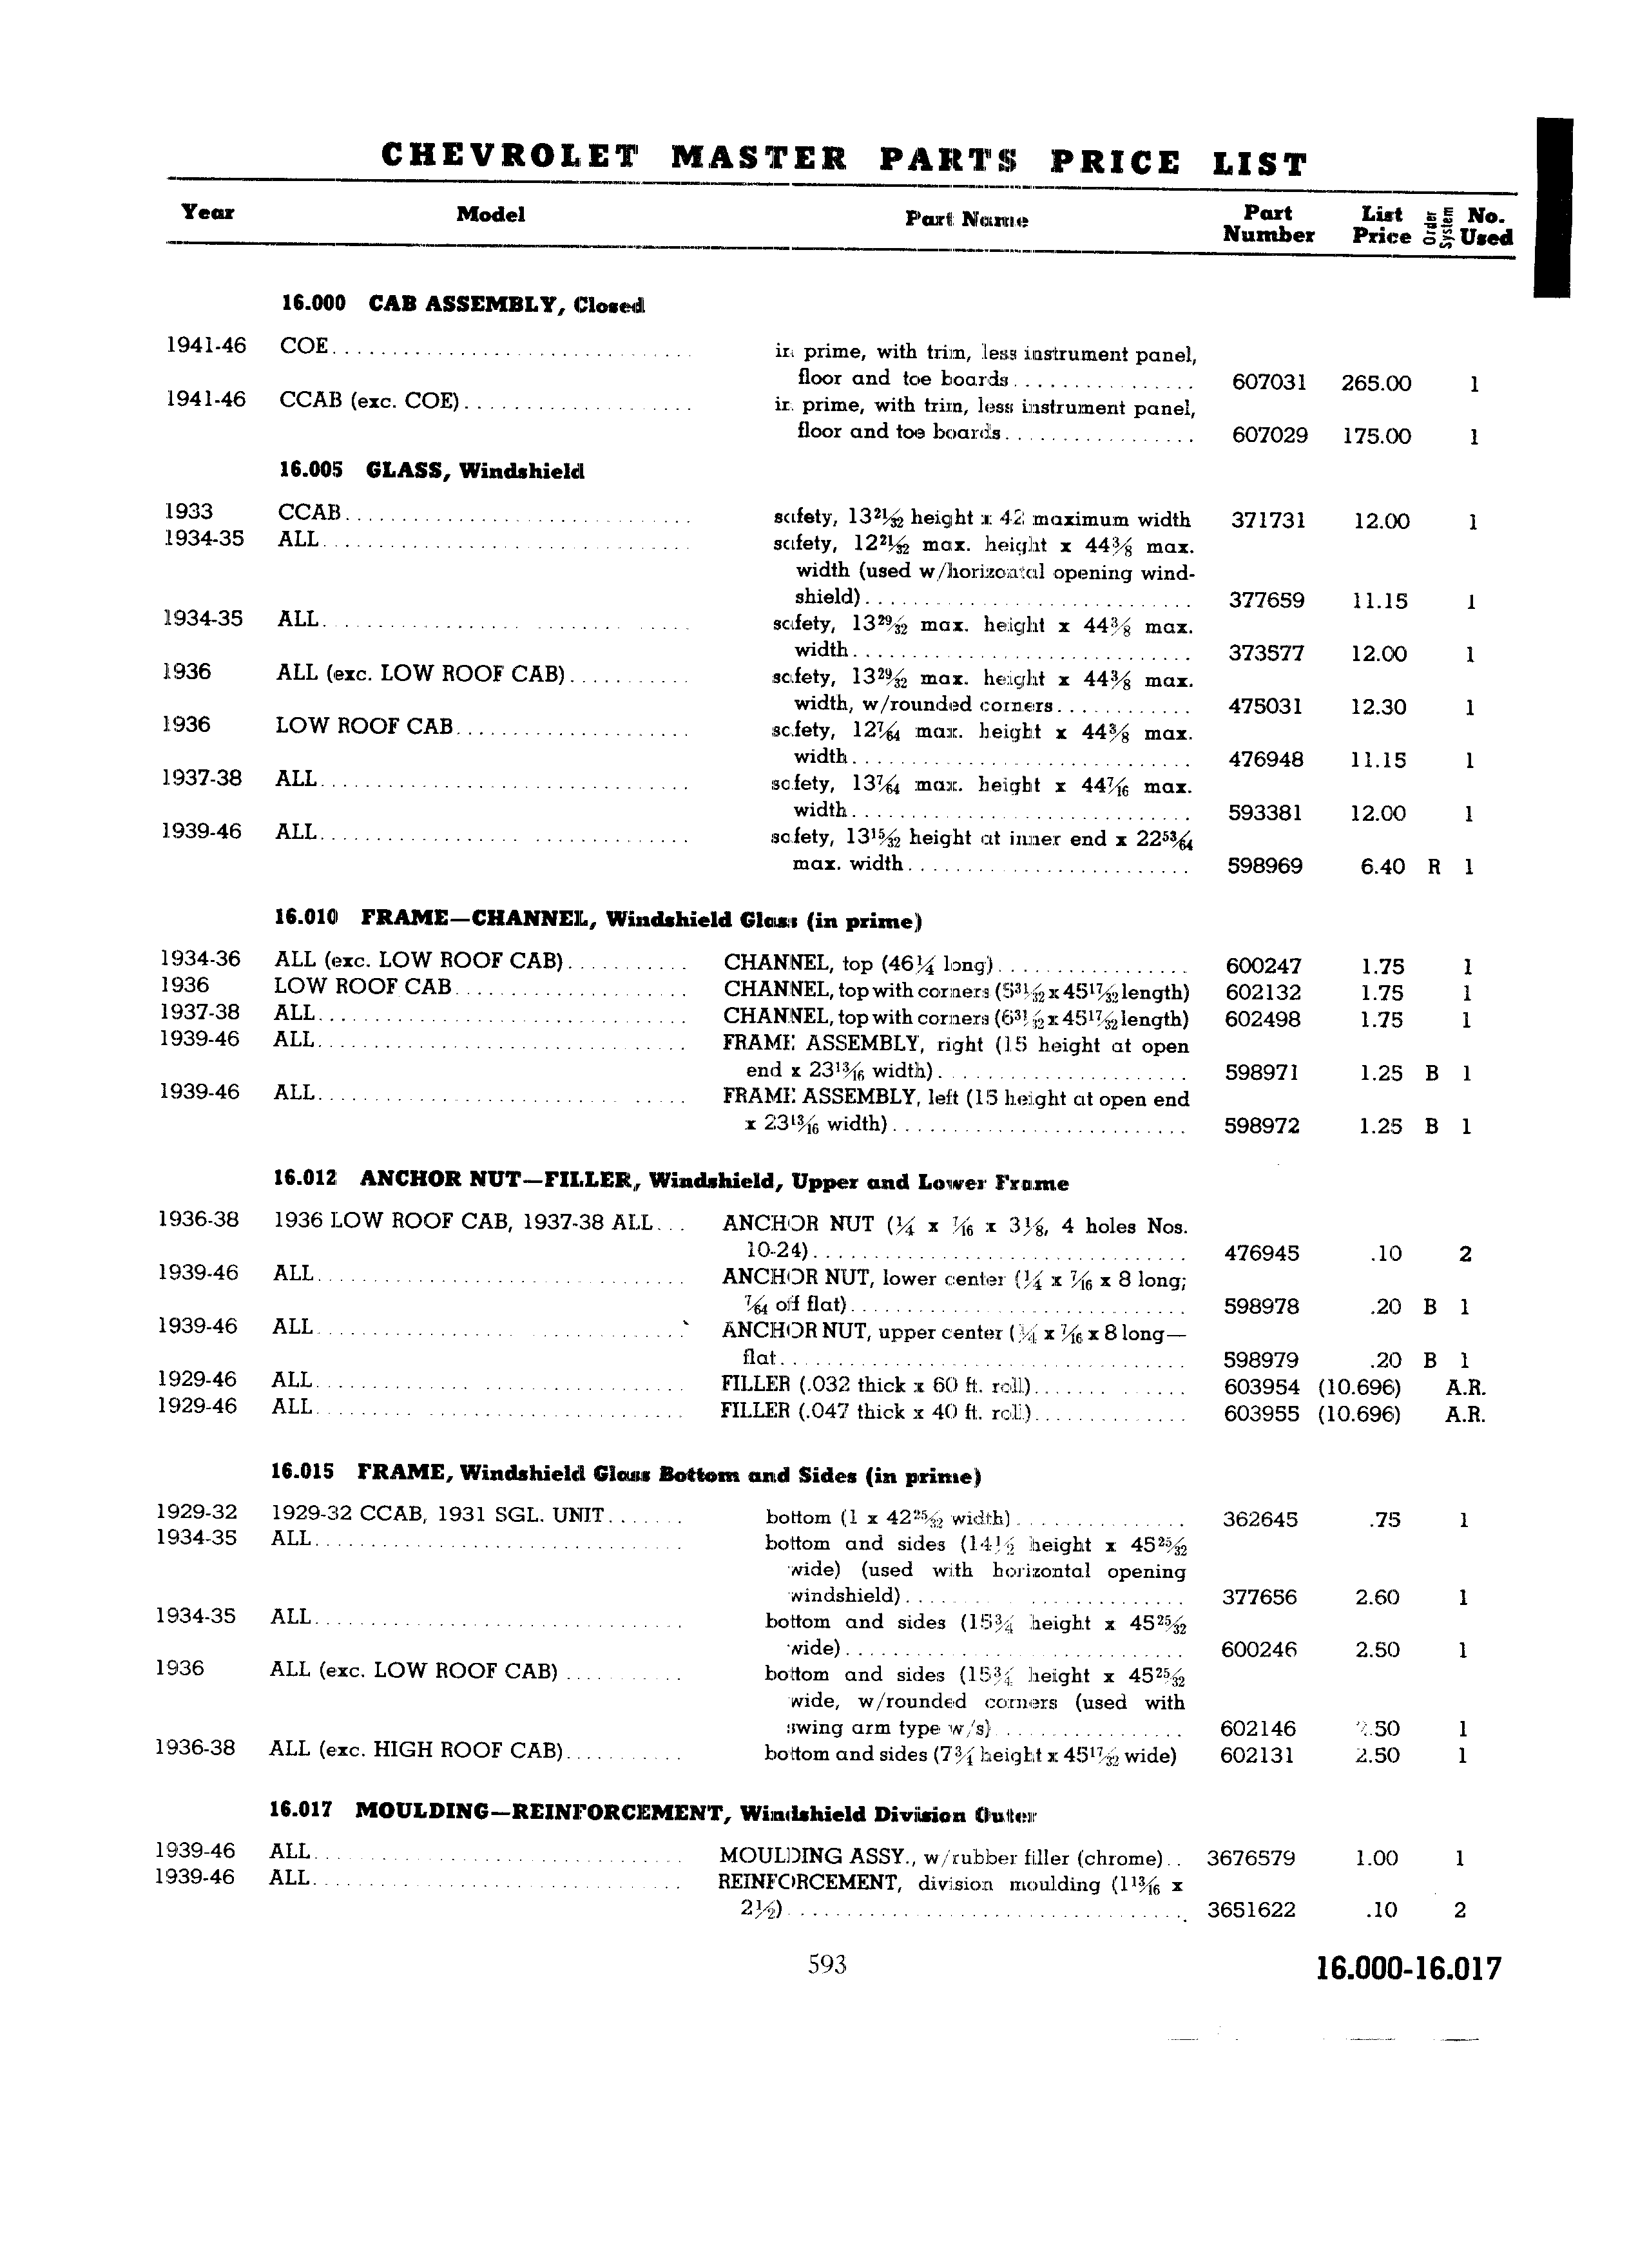 Master Parts Price List July 1946